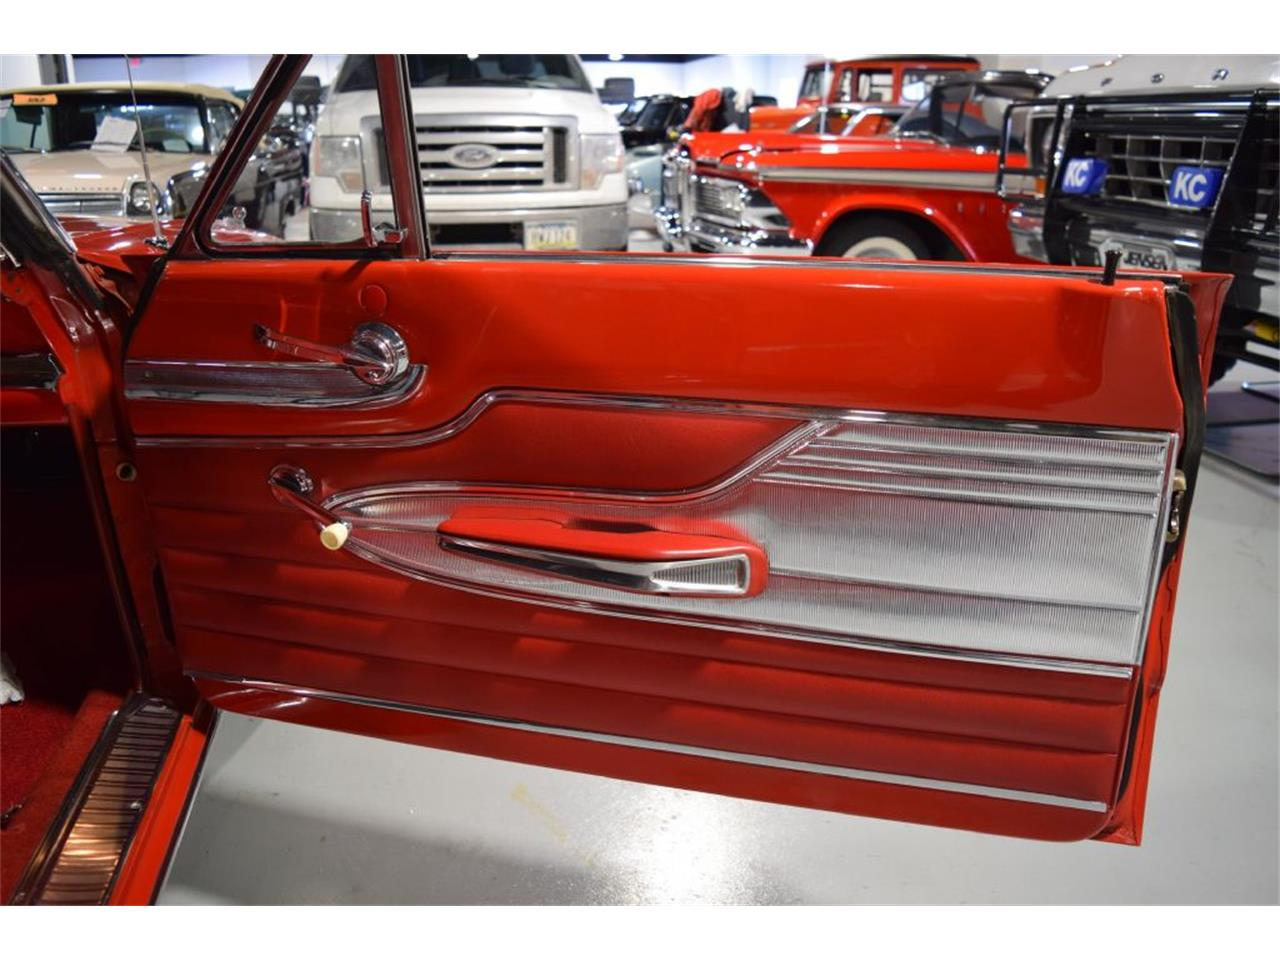 1963 Ford Falcon Futura for sale in Sioux City, IA – photo 24